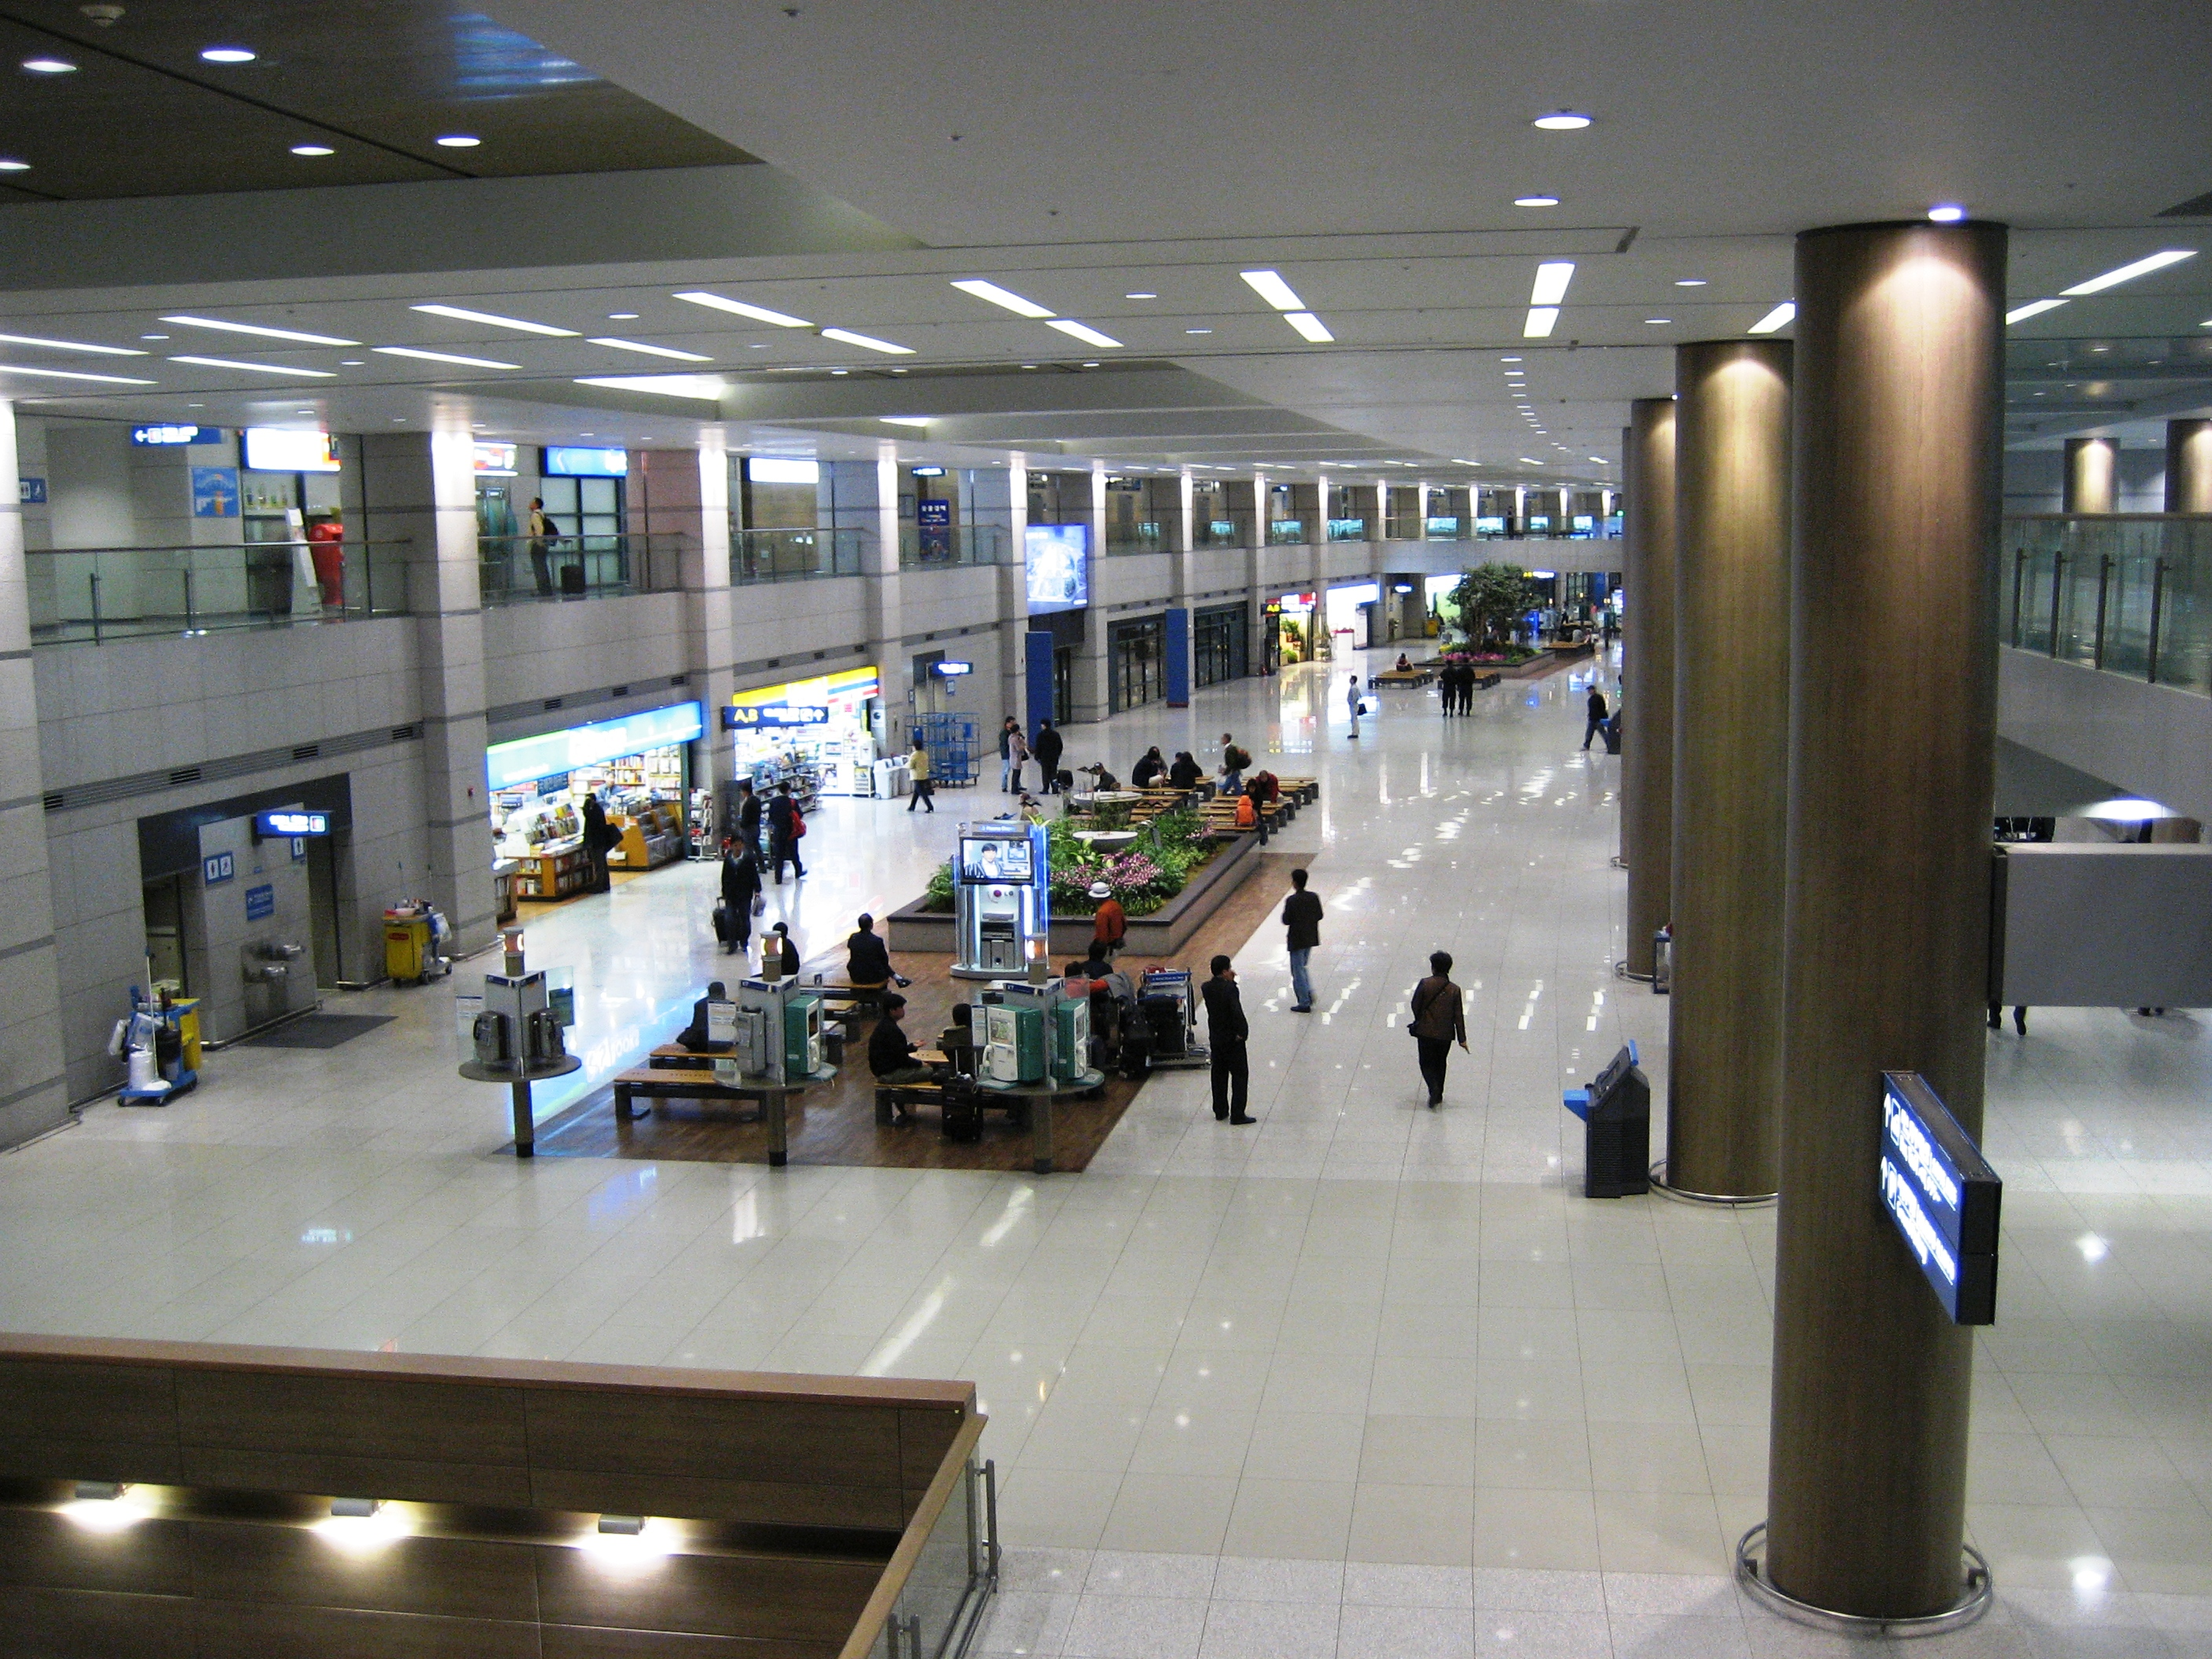 File Korea Incheon International Airport Arrival Lobby Overview Jpg Wikimedia Commons